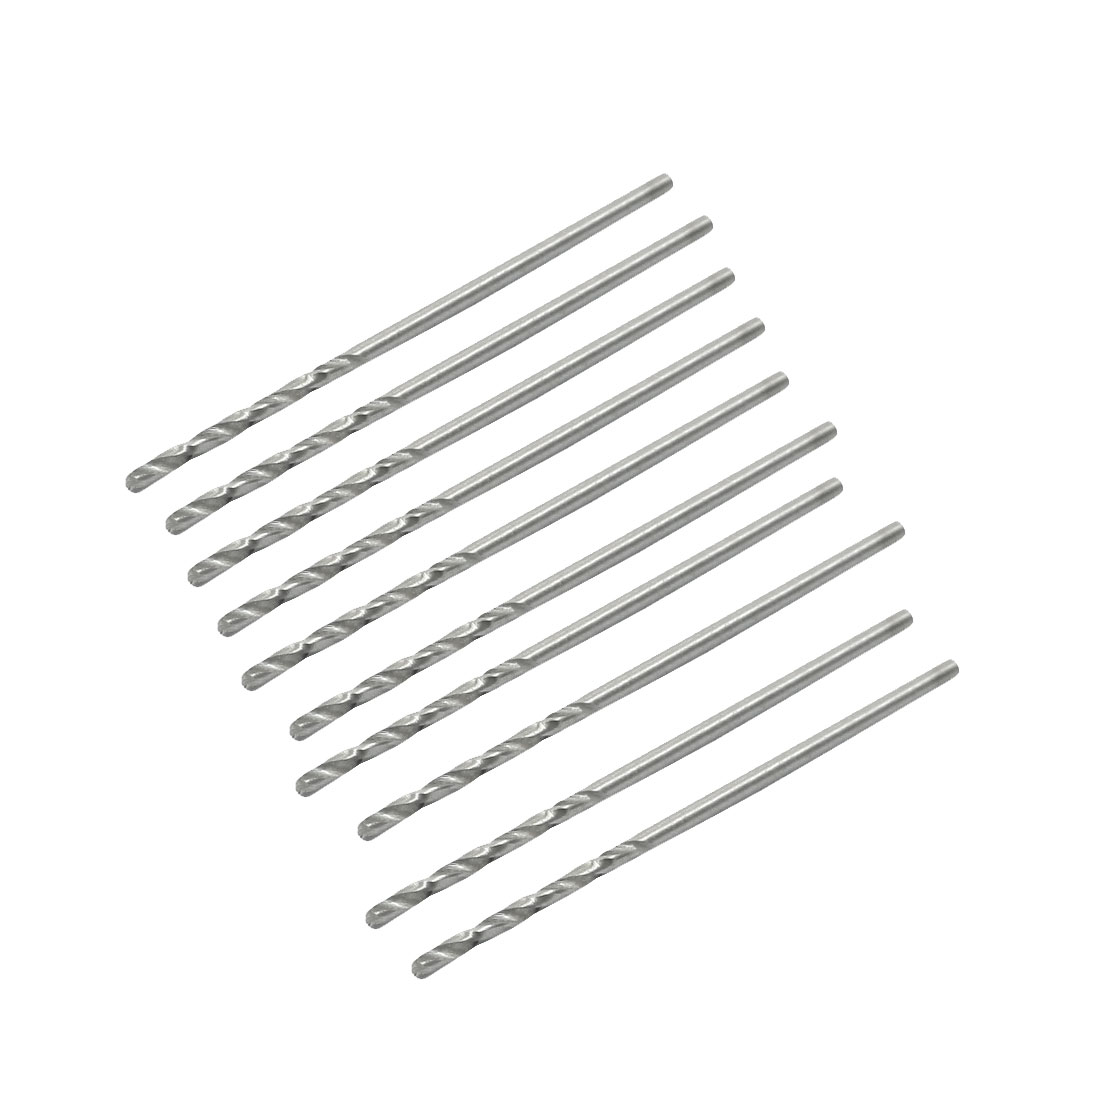 10 Pcs Silver Gray HSS 1.1mm Dia 37mm Long Spiral Flute Twist Drilling Bits